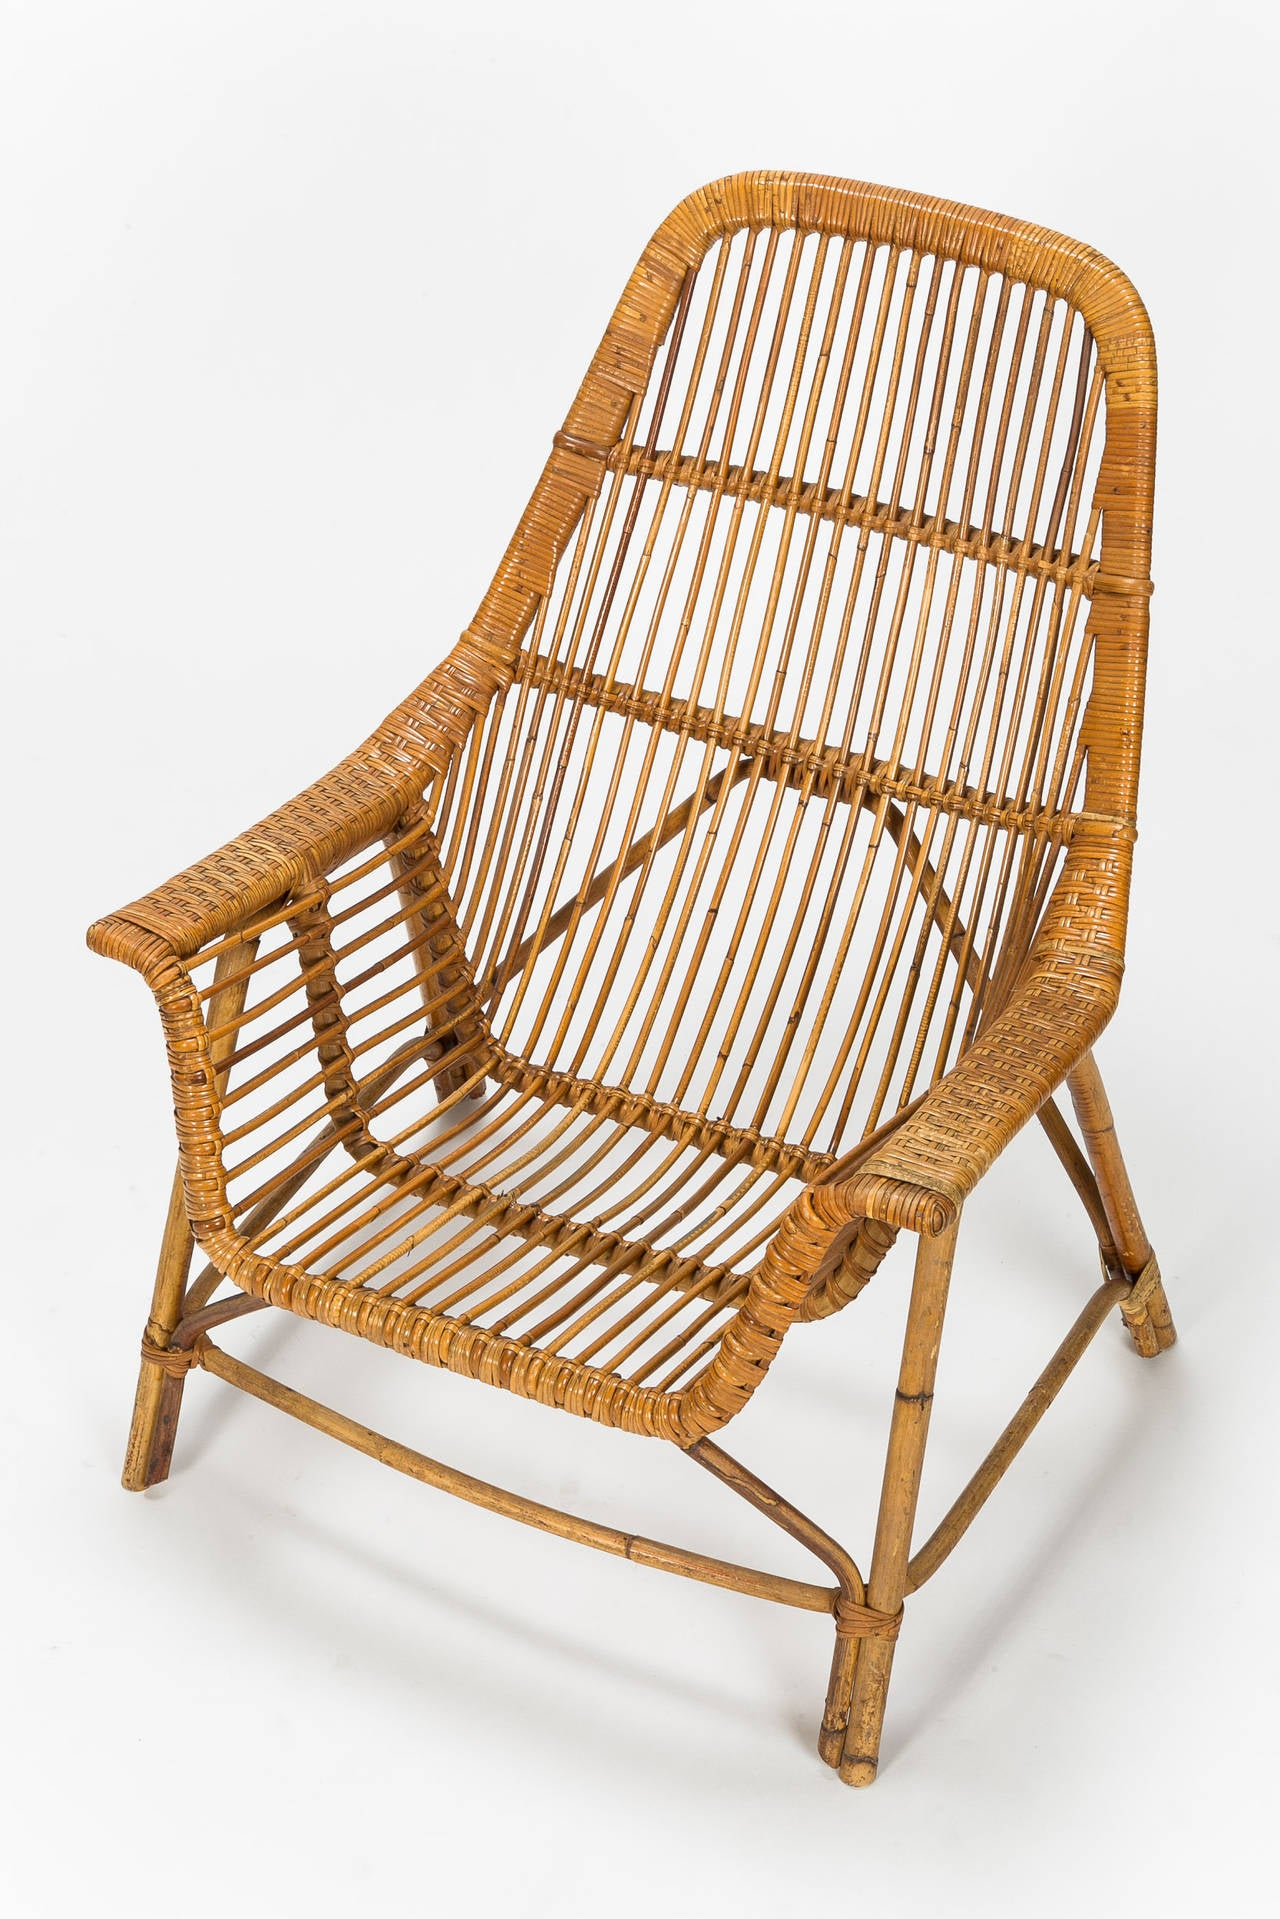 Pair of Italian Wicker Chairs by George Coslin, 1956 at ...